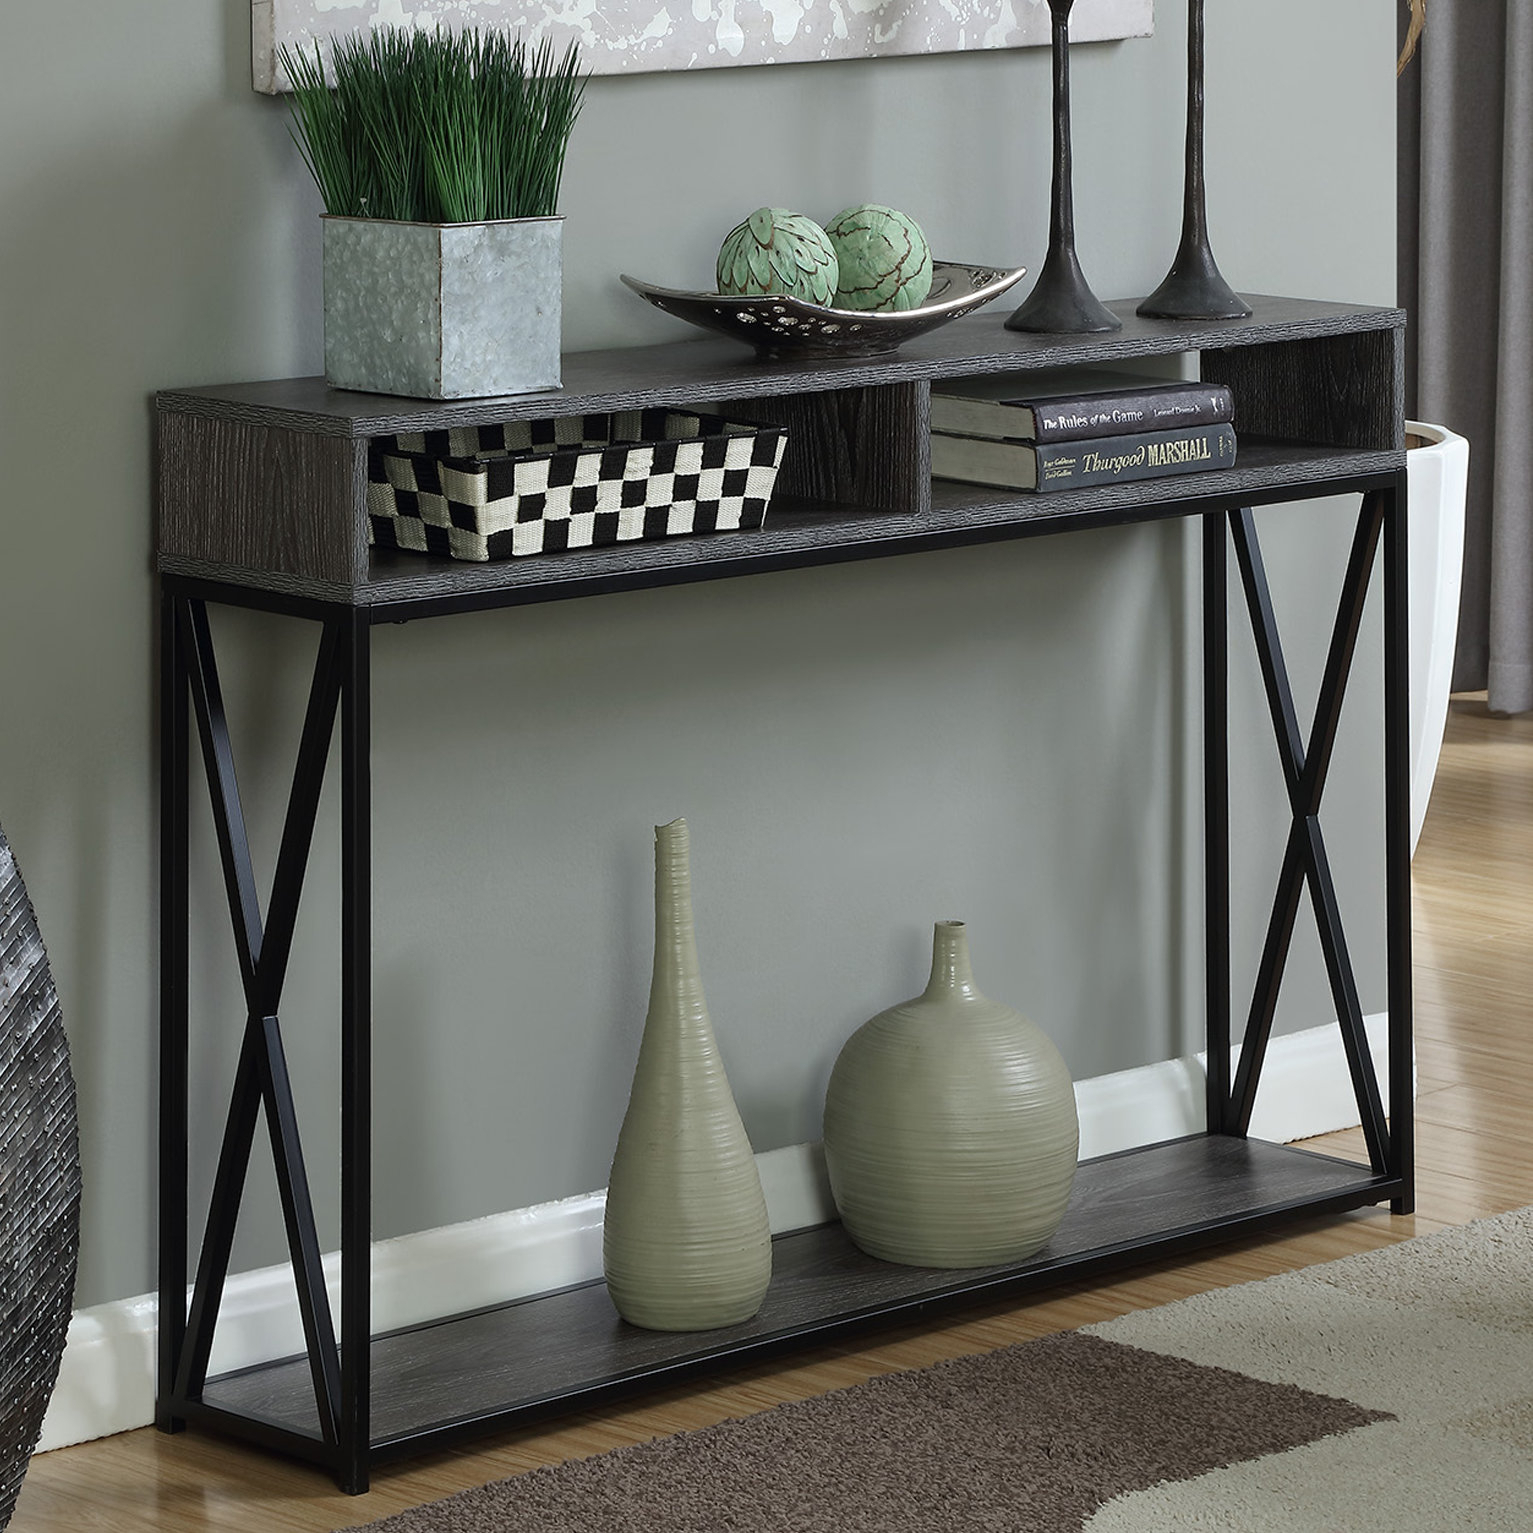 Narrow Console Tables You'll Love | Wayfair.ca Inside Mix Patina Metal Frame Console Tables (Photo 9 of 30)